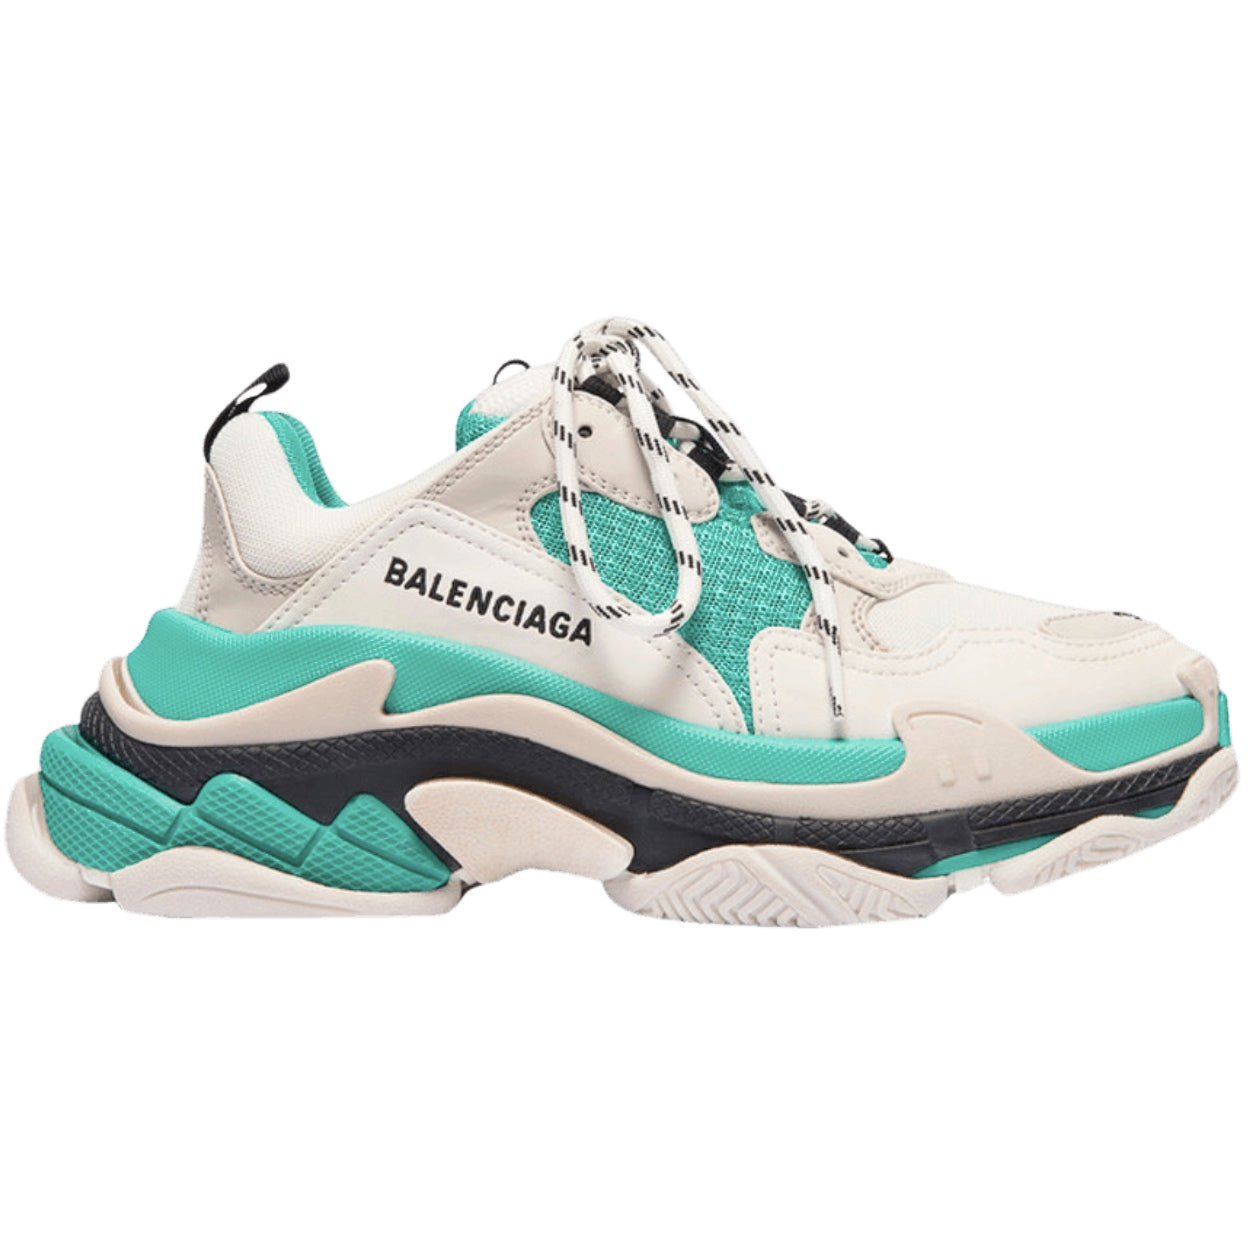 Balenciaga Triple S 'White Green' - After Burn